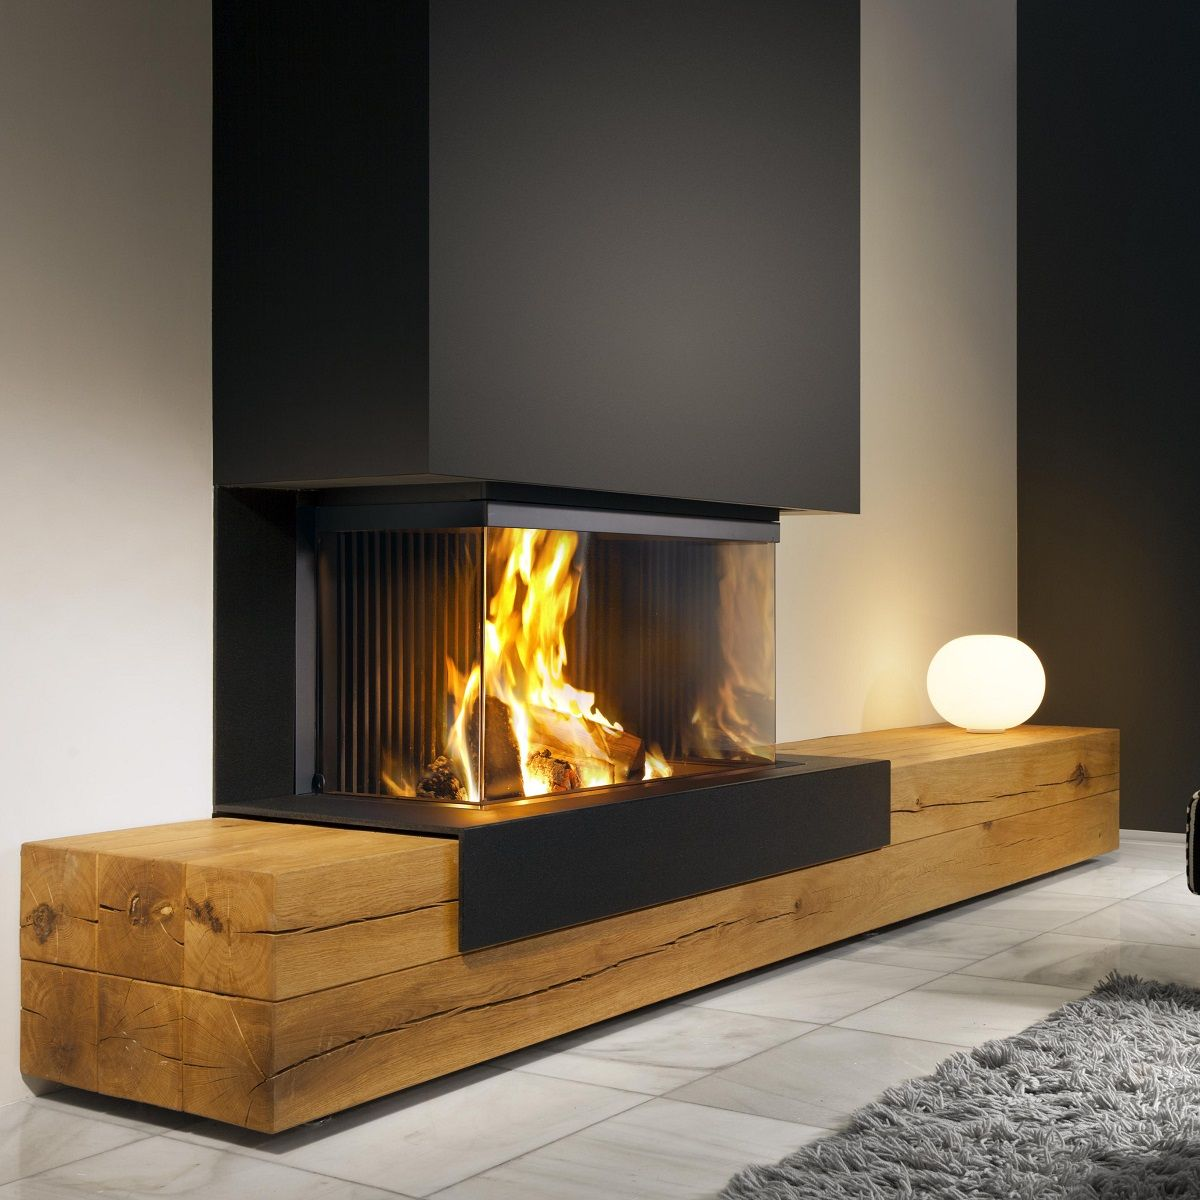 11 Wood Seat Extends From Fireplace To Southern Wall Kamin Design Kamin Wohnzimmer Kamin Modern